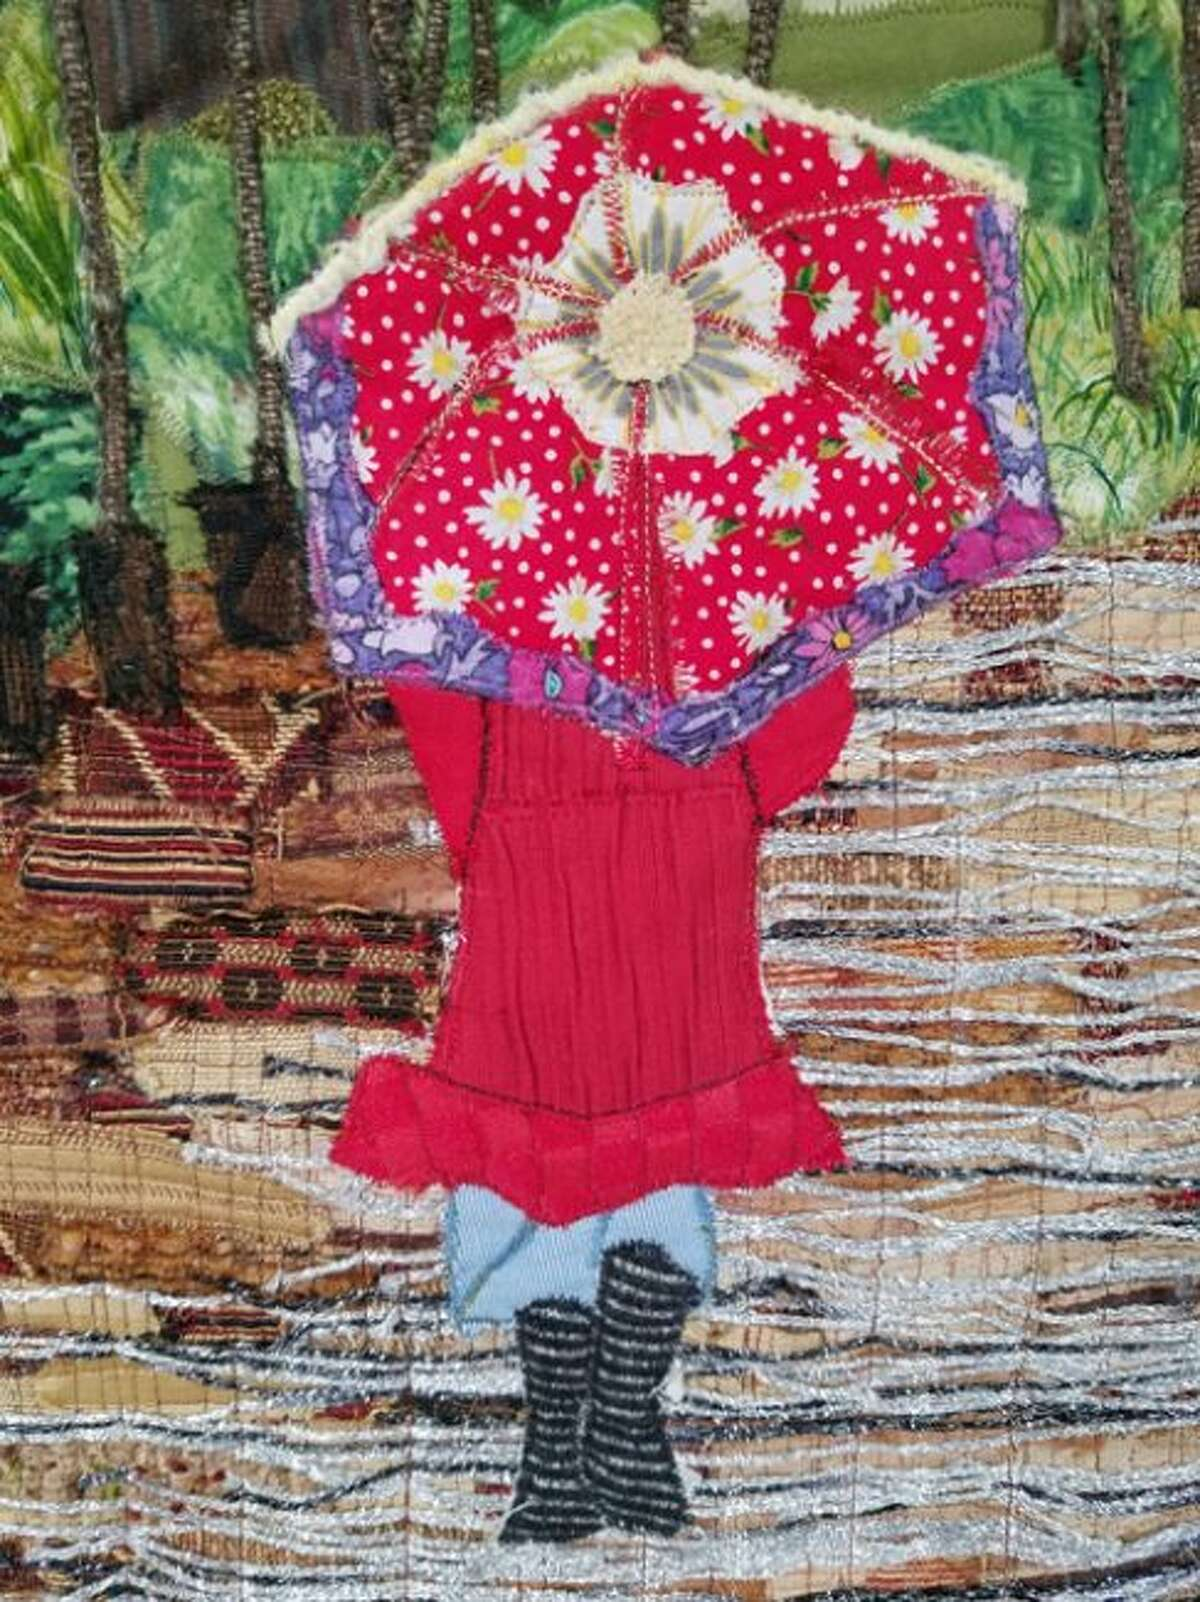 """Shown is Carol Marshall's quilt called """"Walking in the Rain that will be on display with many of her works on display at the Ludington Center for the Arts Nov. 1-15."""